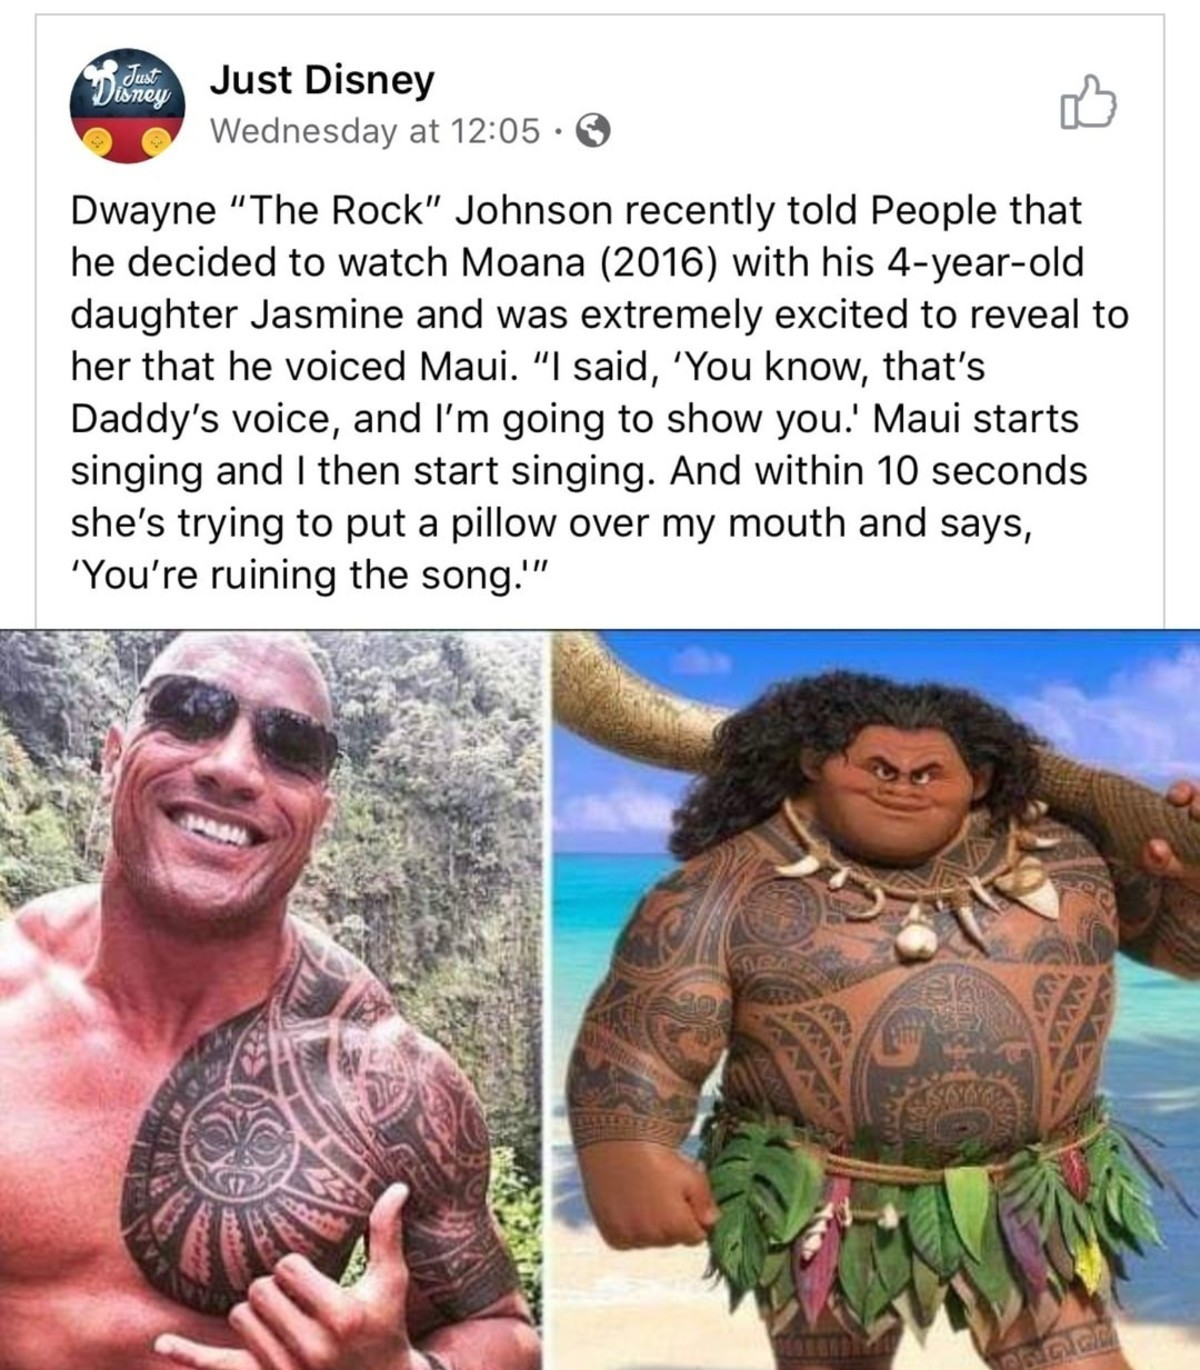 I don't know if it's true but if so it's hilarious. .. and adorable. Like Terry Crews, Dwayne Johnson has a big heart to power all this muscle.Comment edited at .